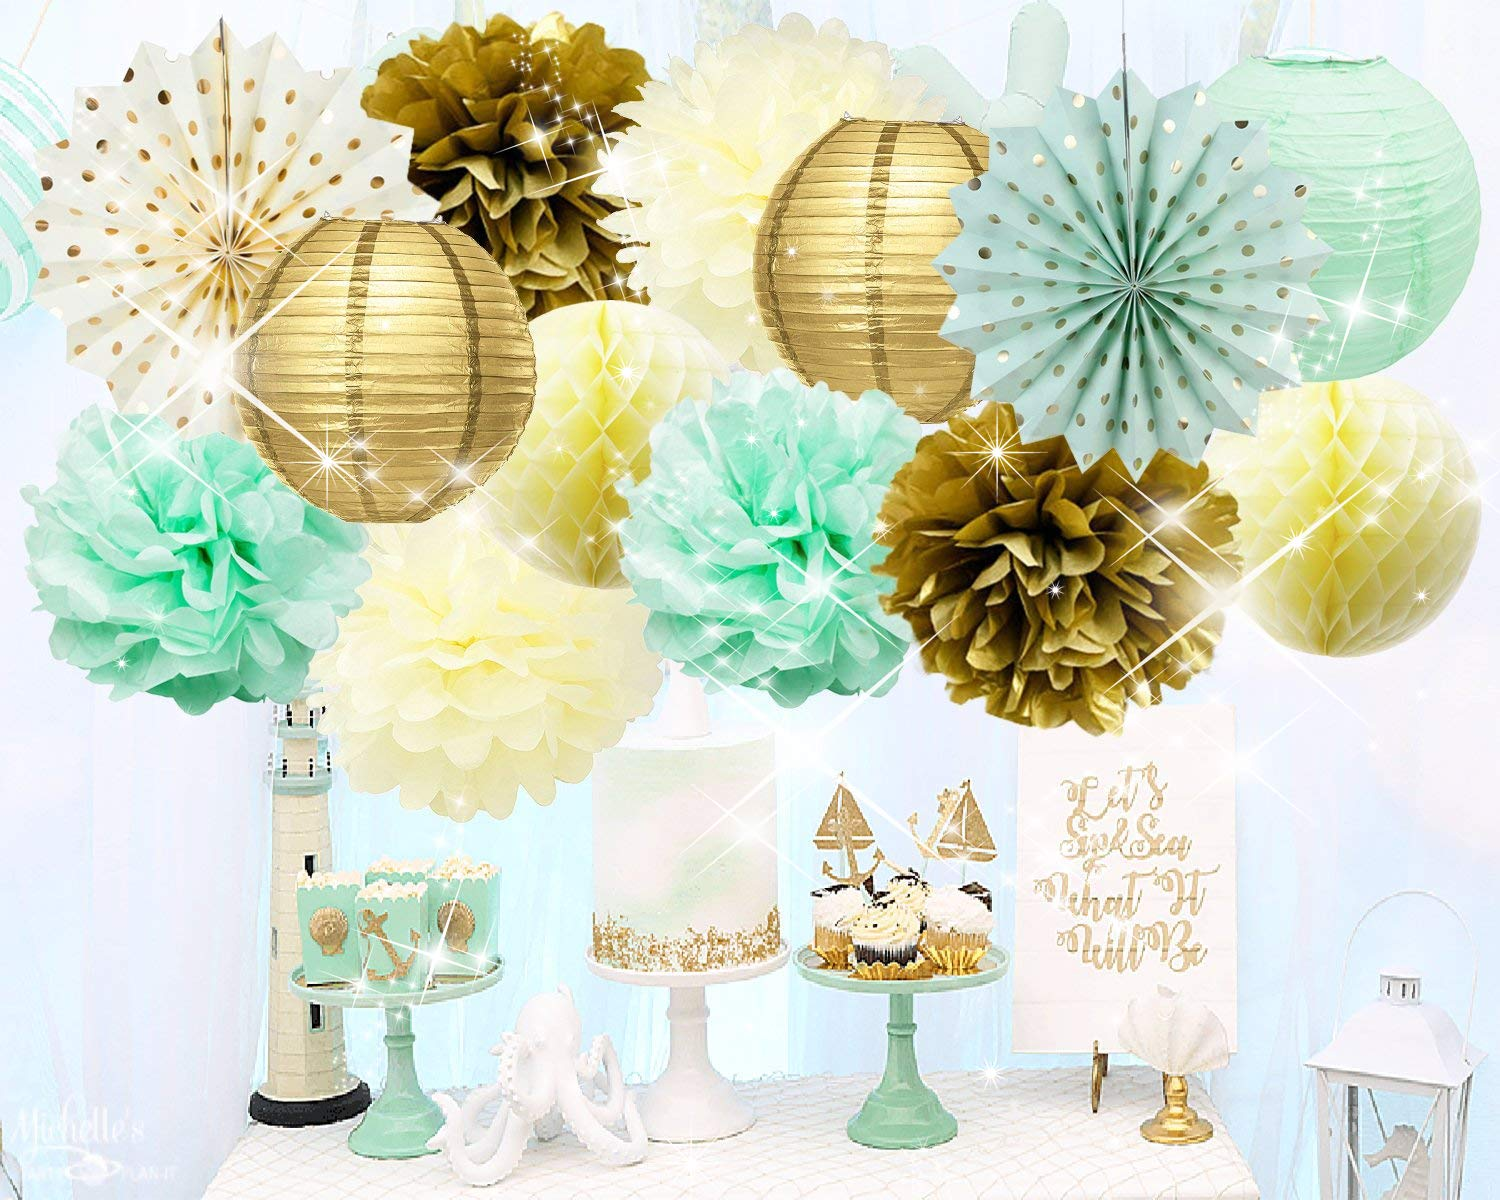 Qian's Party Mint Gold Birthday Decorations Mint Cream Gold Polka Dot Paper Fan for Gender Neutral Baby Shower Decor/Trial Baby Shower Decorations Mint Gold First Birthday Bridal Shower Decorations by Qian's Party